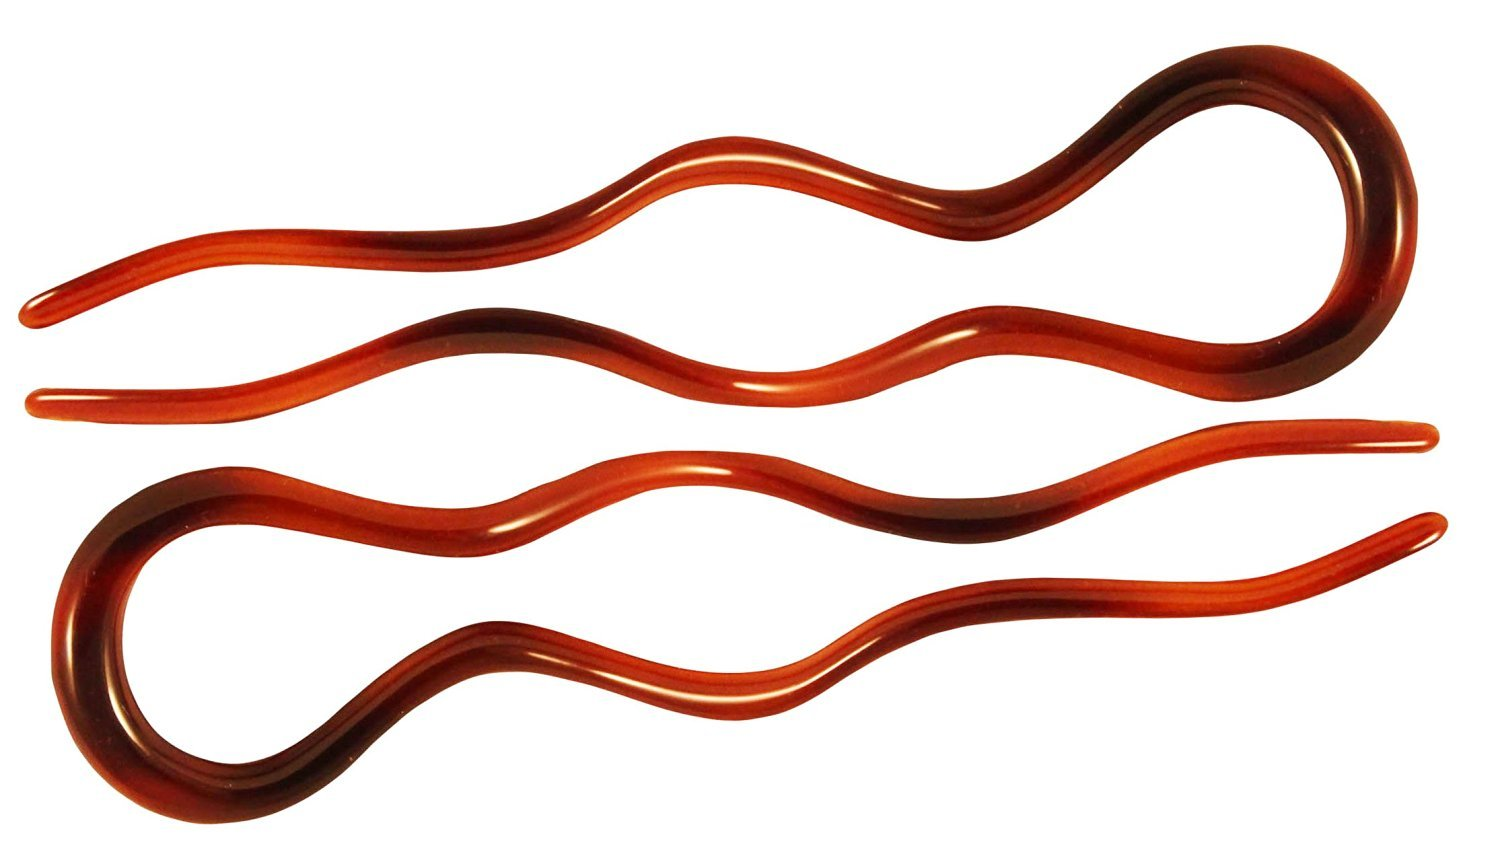 Parcelona French Wavy Crink U Shaped Tortoise Shell 4 inch Large Set of 2 Hair Pins